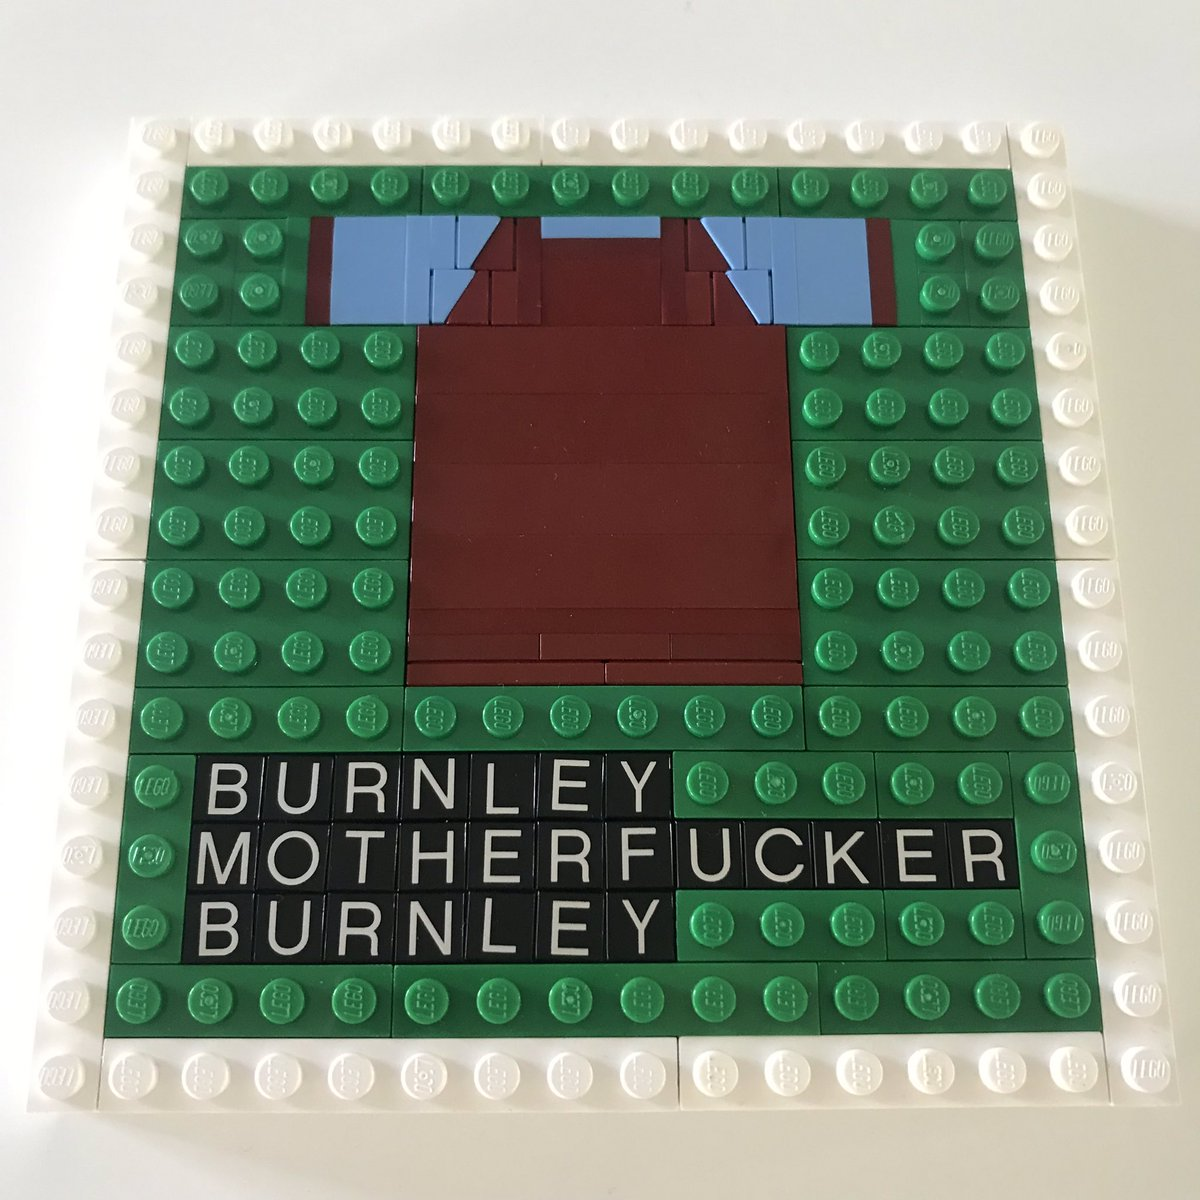 Vackert kämpat Burnley!!!